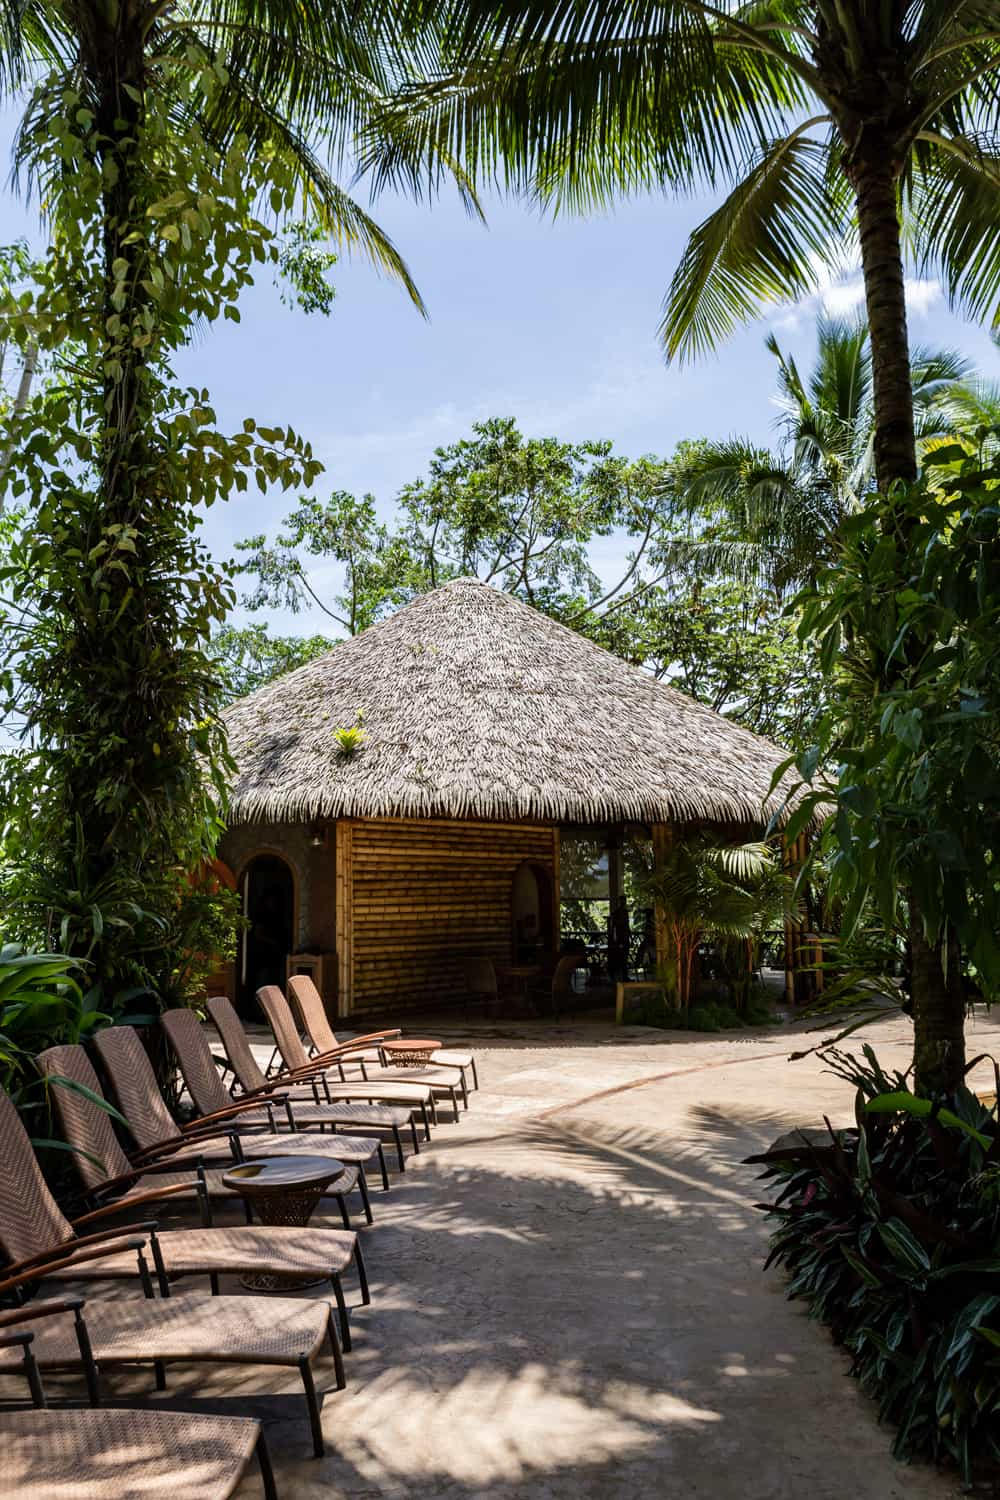 The hut at Treetops is the covered area for this wedding location at The Springs Resort.